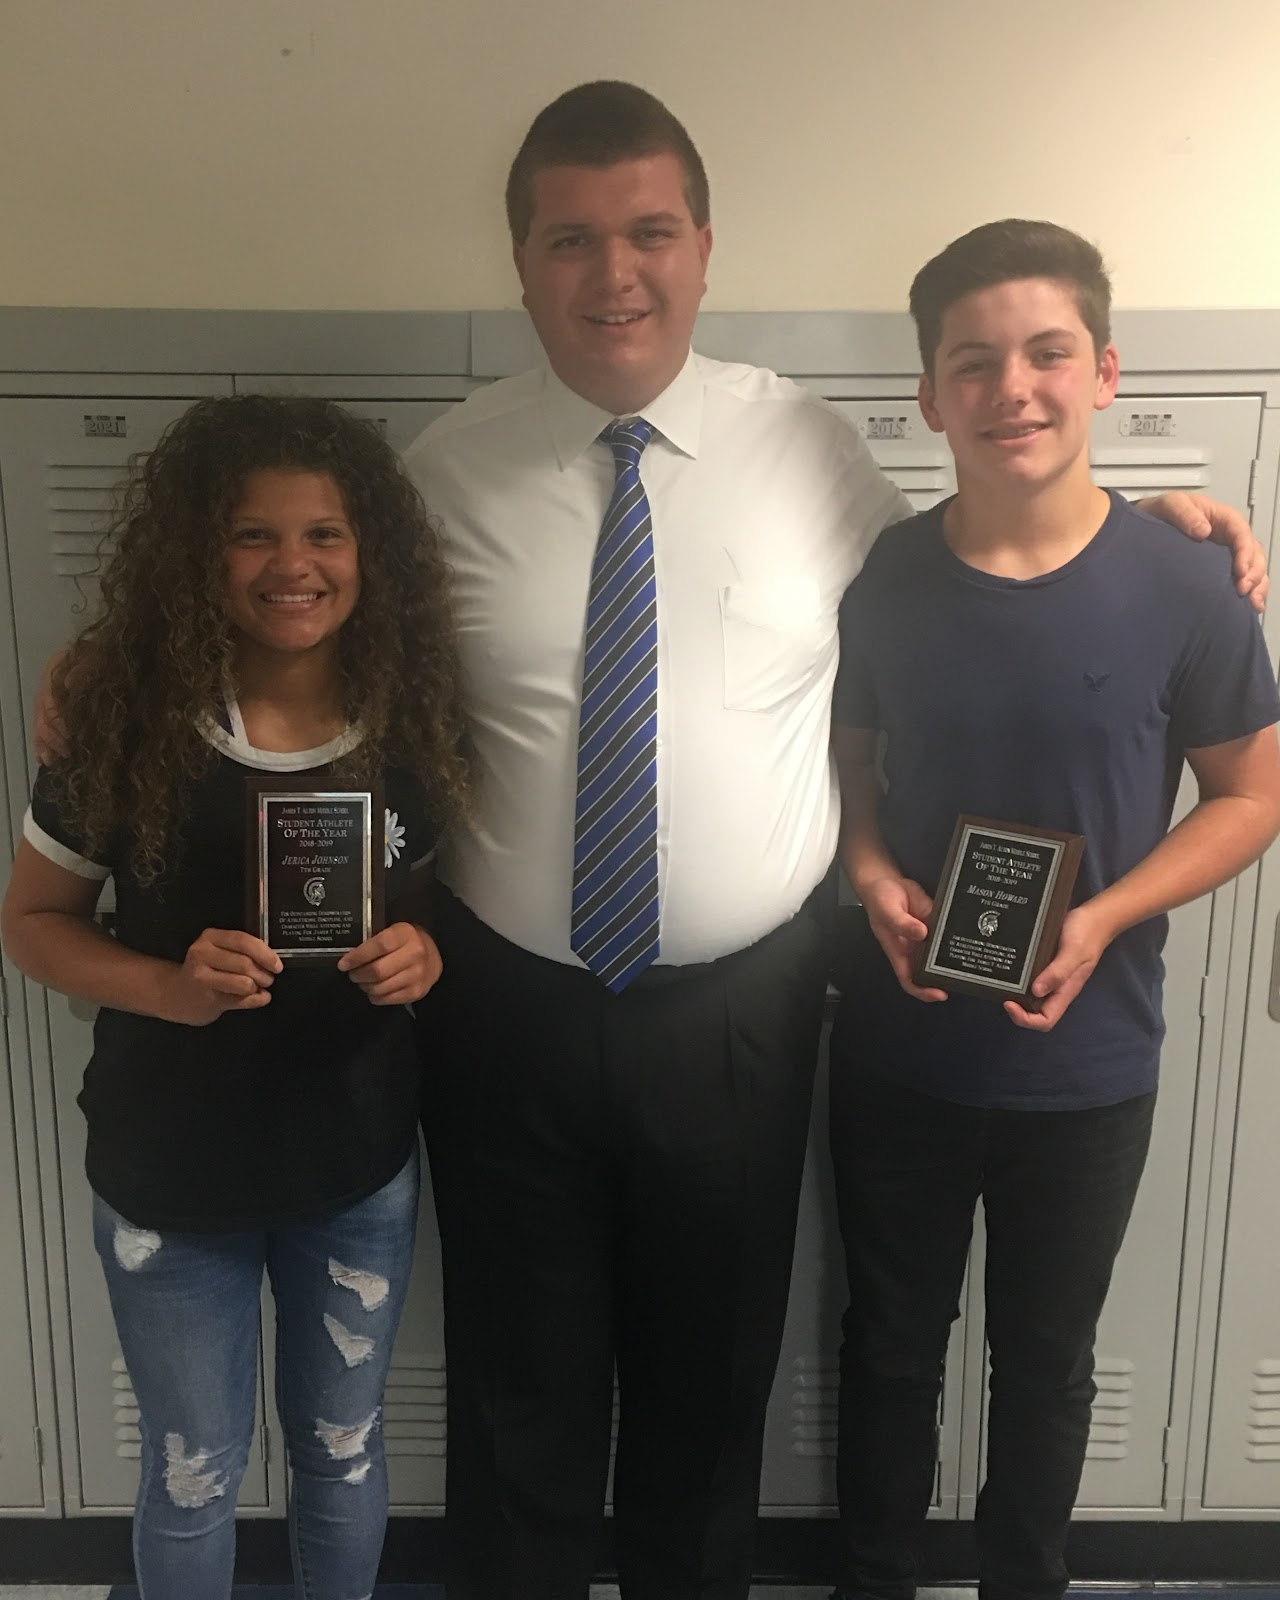 Jerica Johnson & Mason Howard, 7th Grade Student Athletes of the Year (w/ Athletic Director R. Rowland)